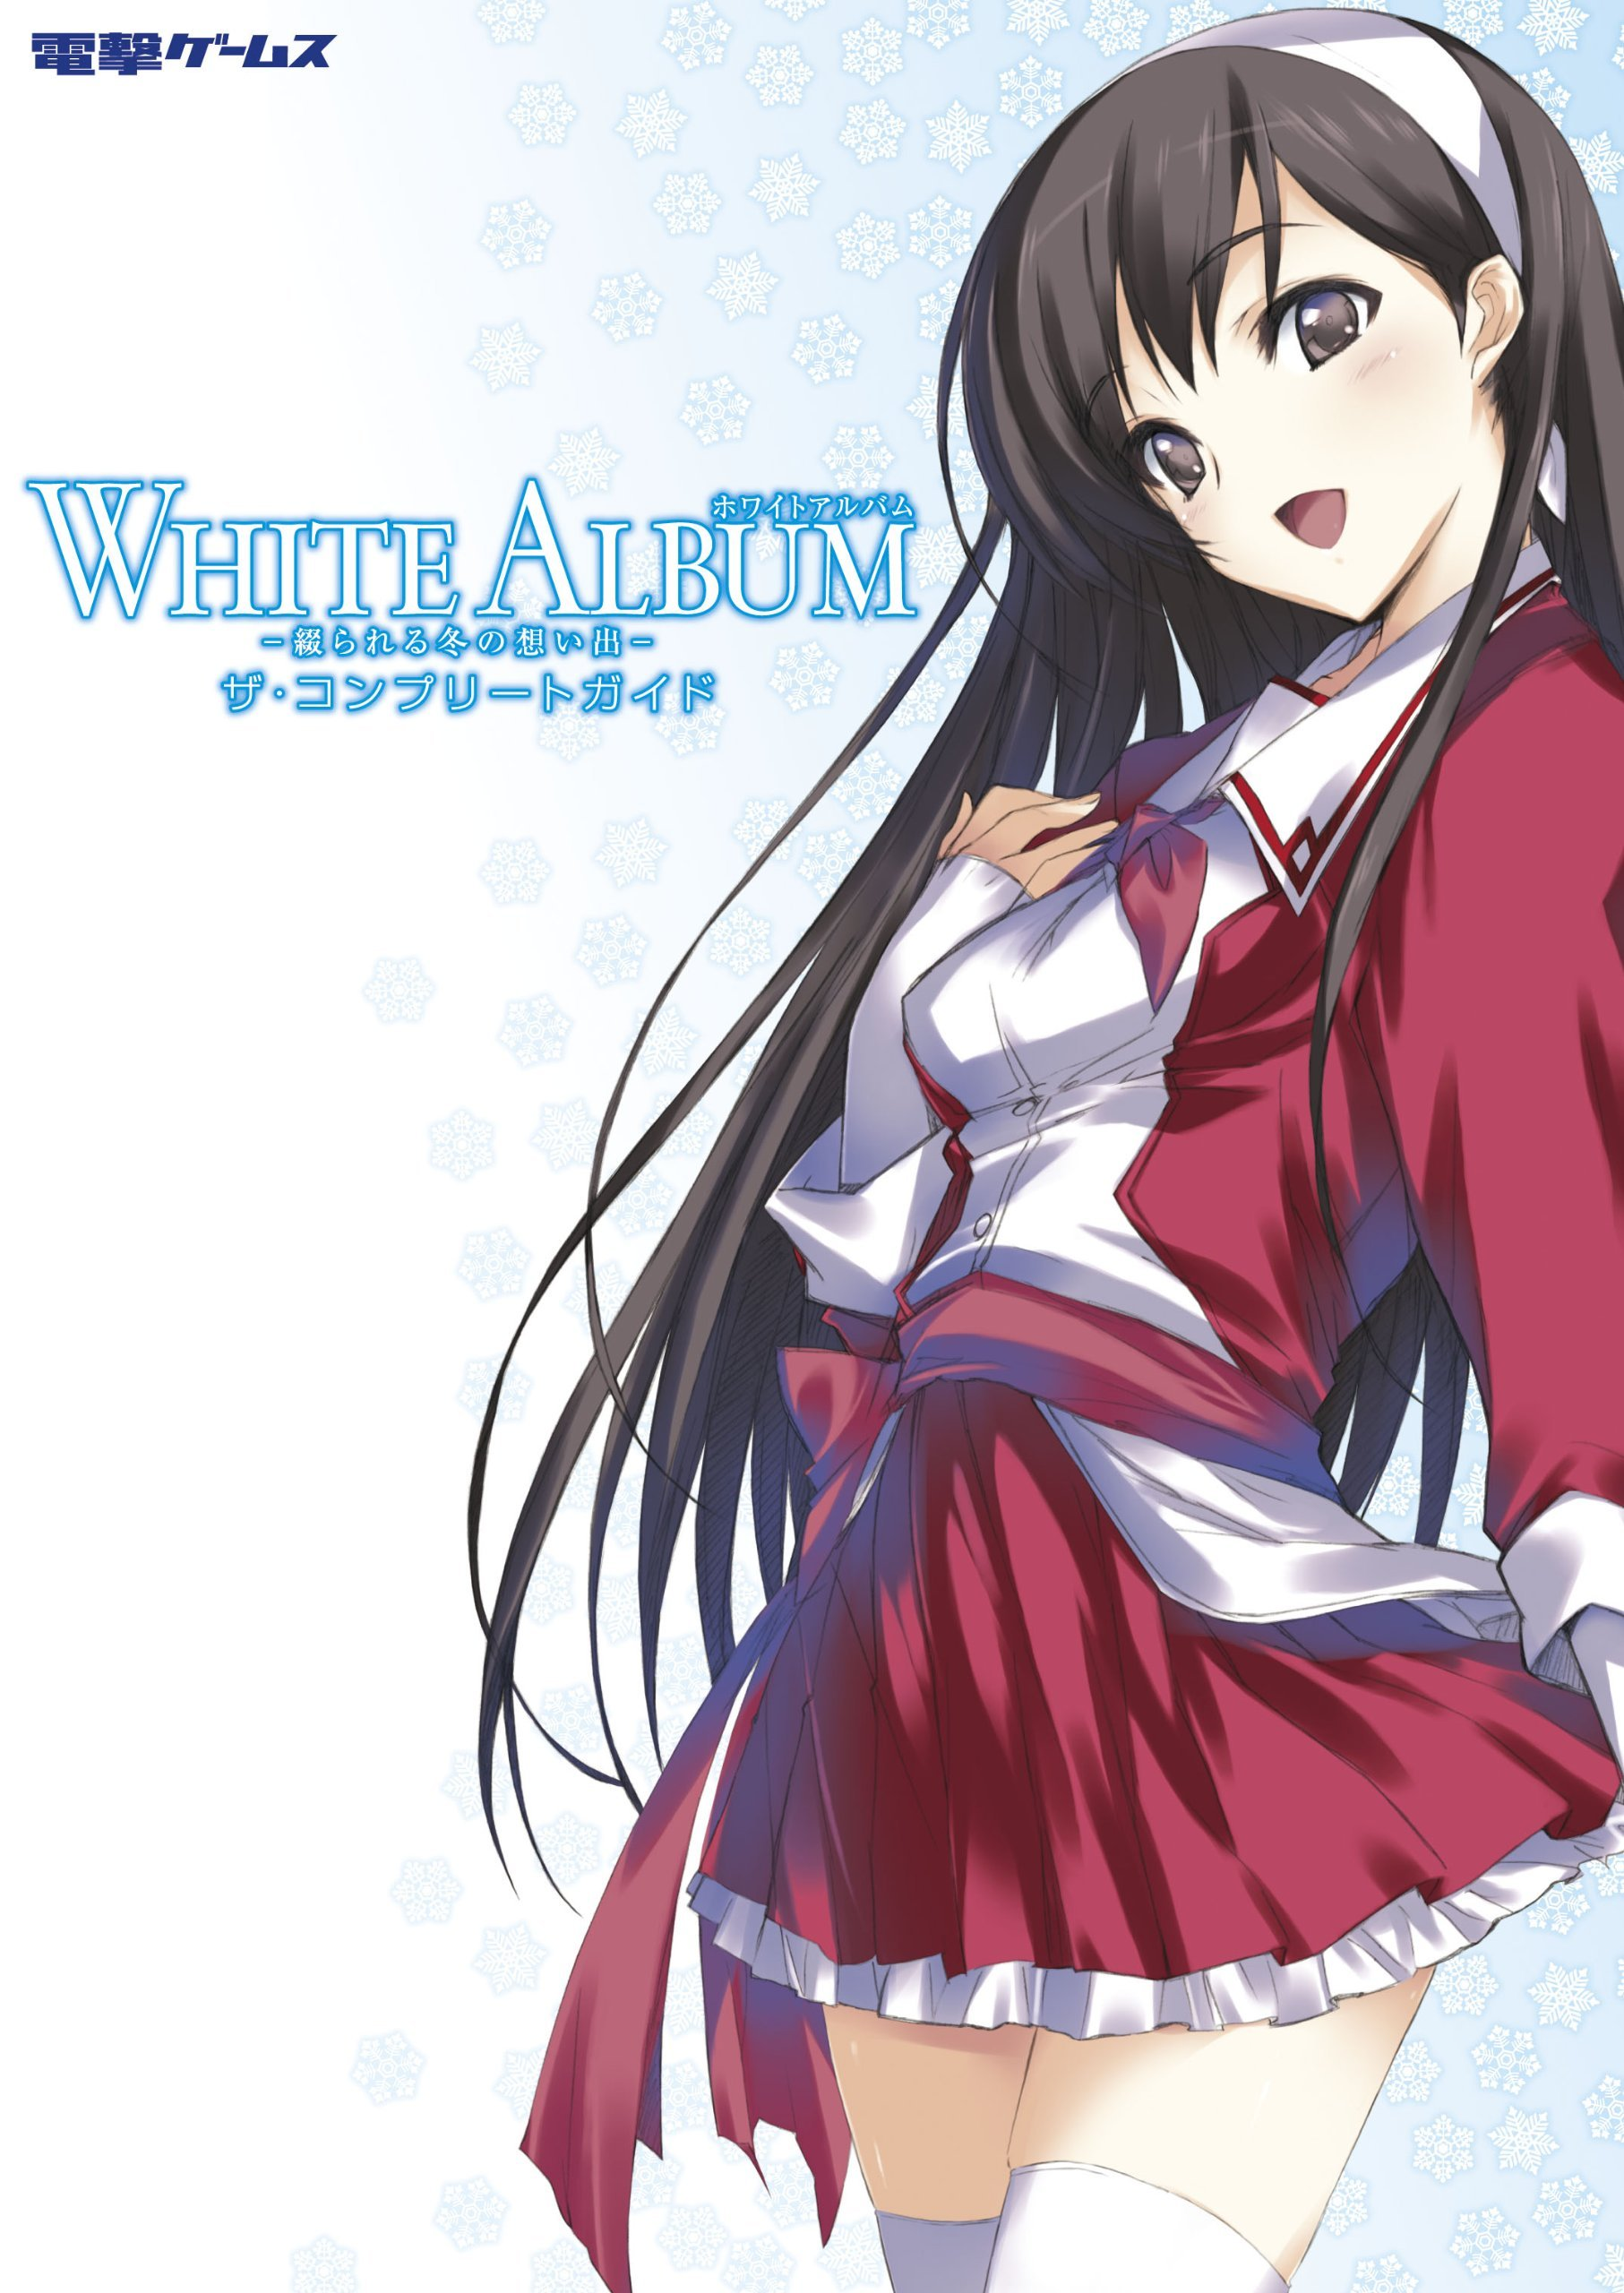 White Album: tsudzura reru fuyu no omoide - The Complete Guide